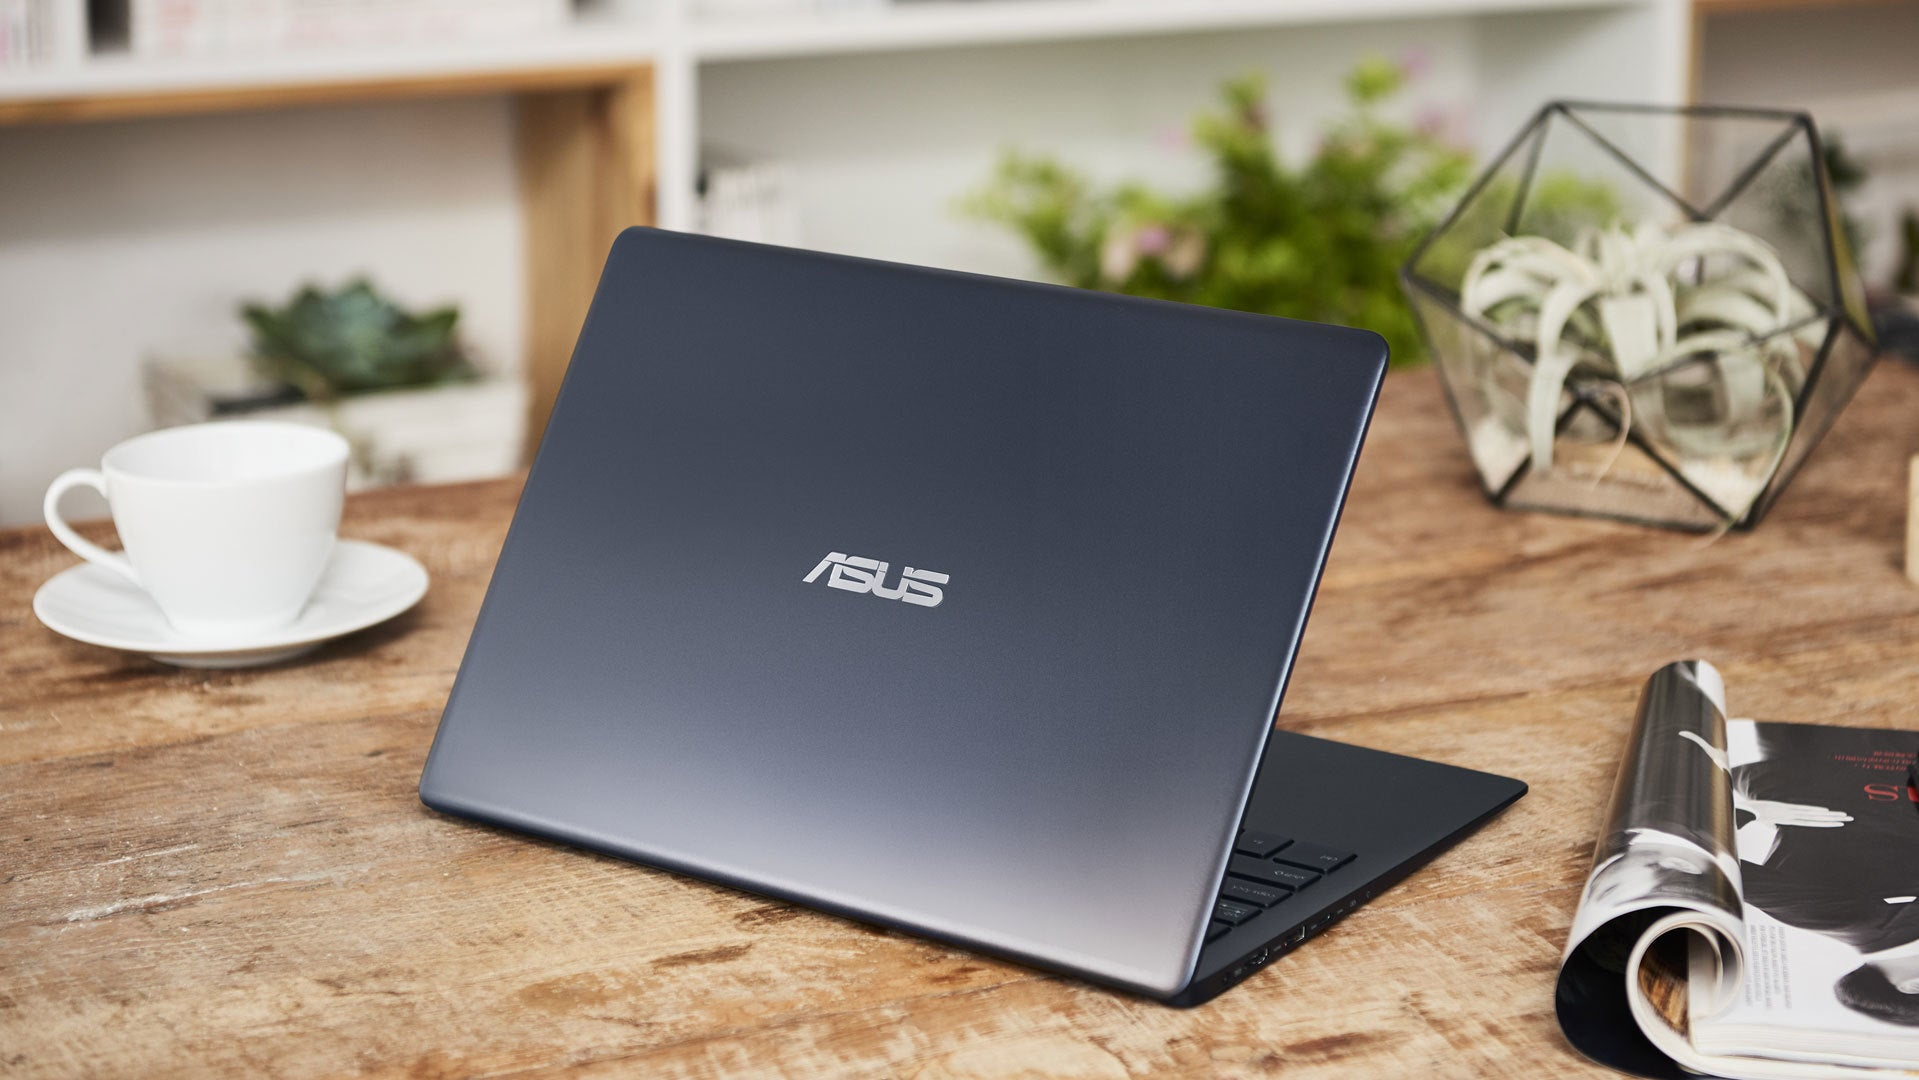 Check If Your Asus Computer Is Affected By The 'Shadow Hammer' Malware Attack